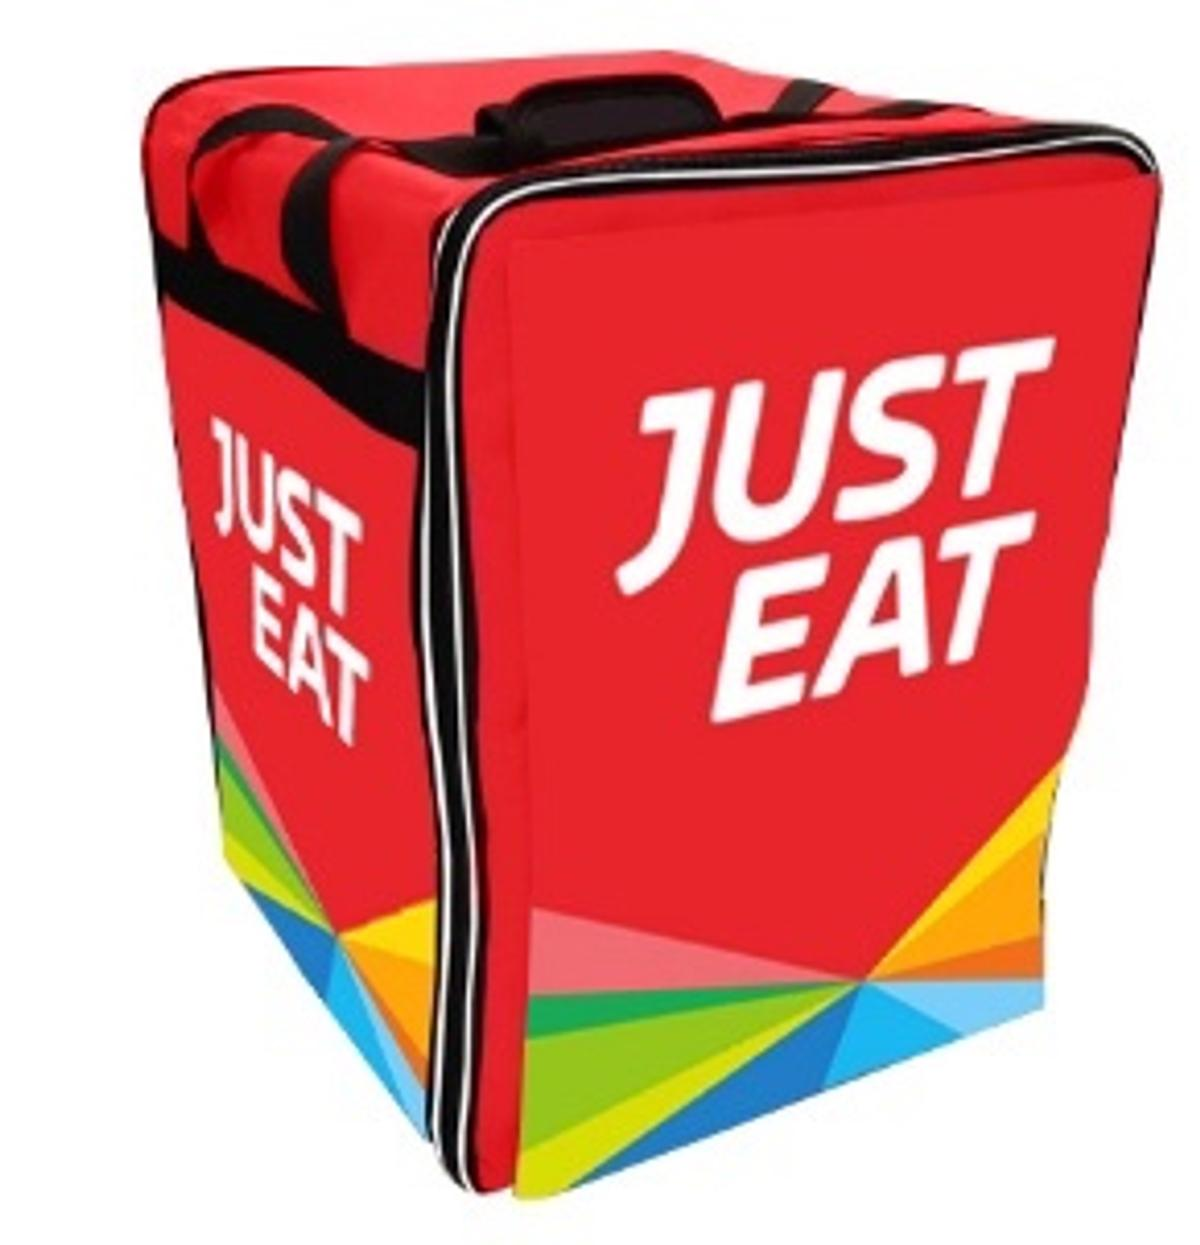 Just Eat Delivery Bag